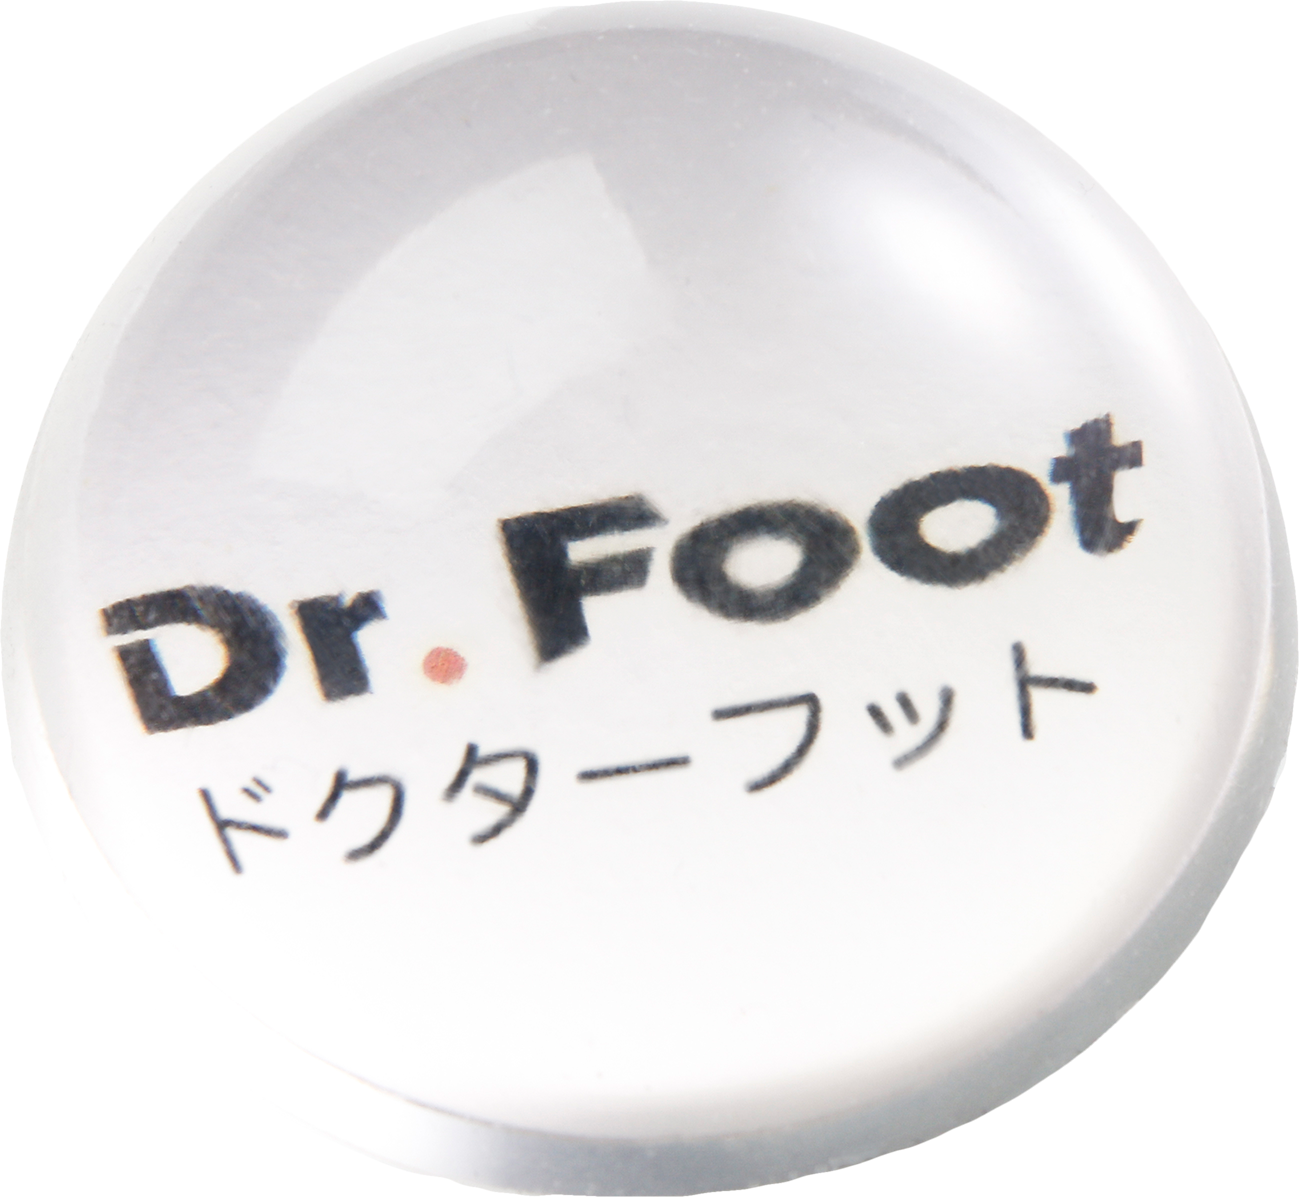 Dr.Foot step